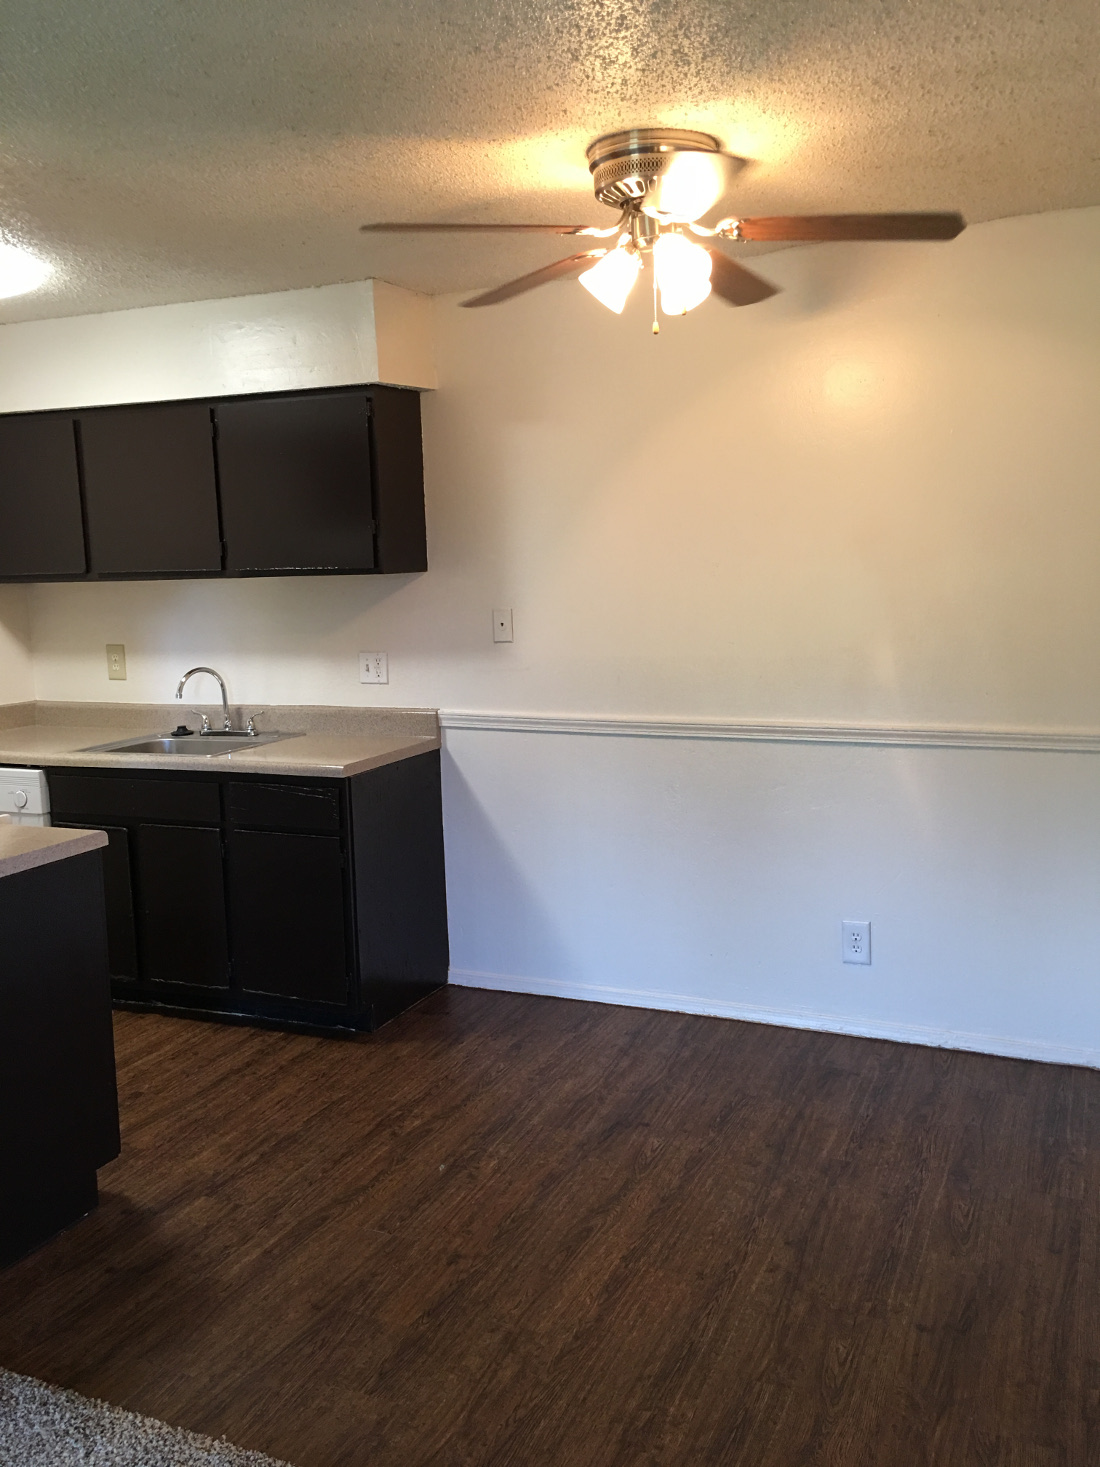 Hardwood Flooring at Union Point Apartments in Tulsa, OK